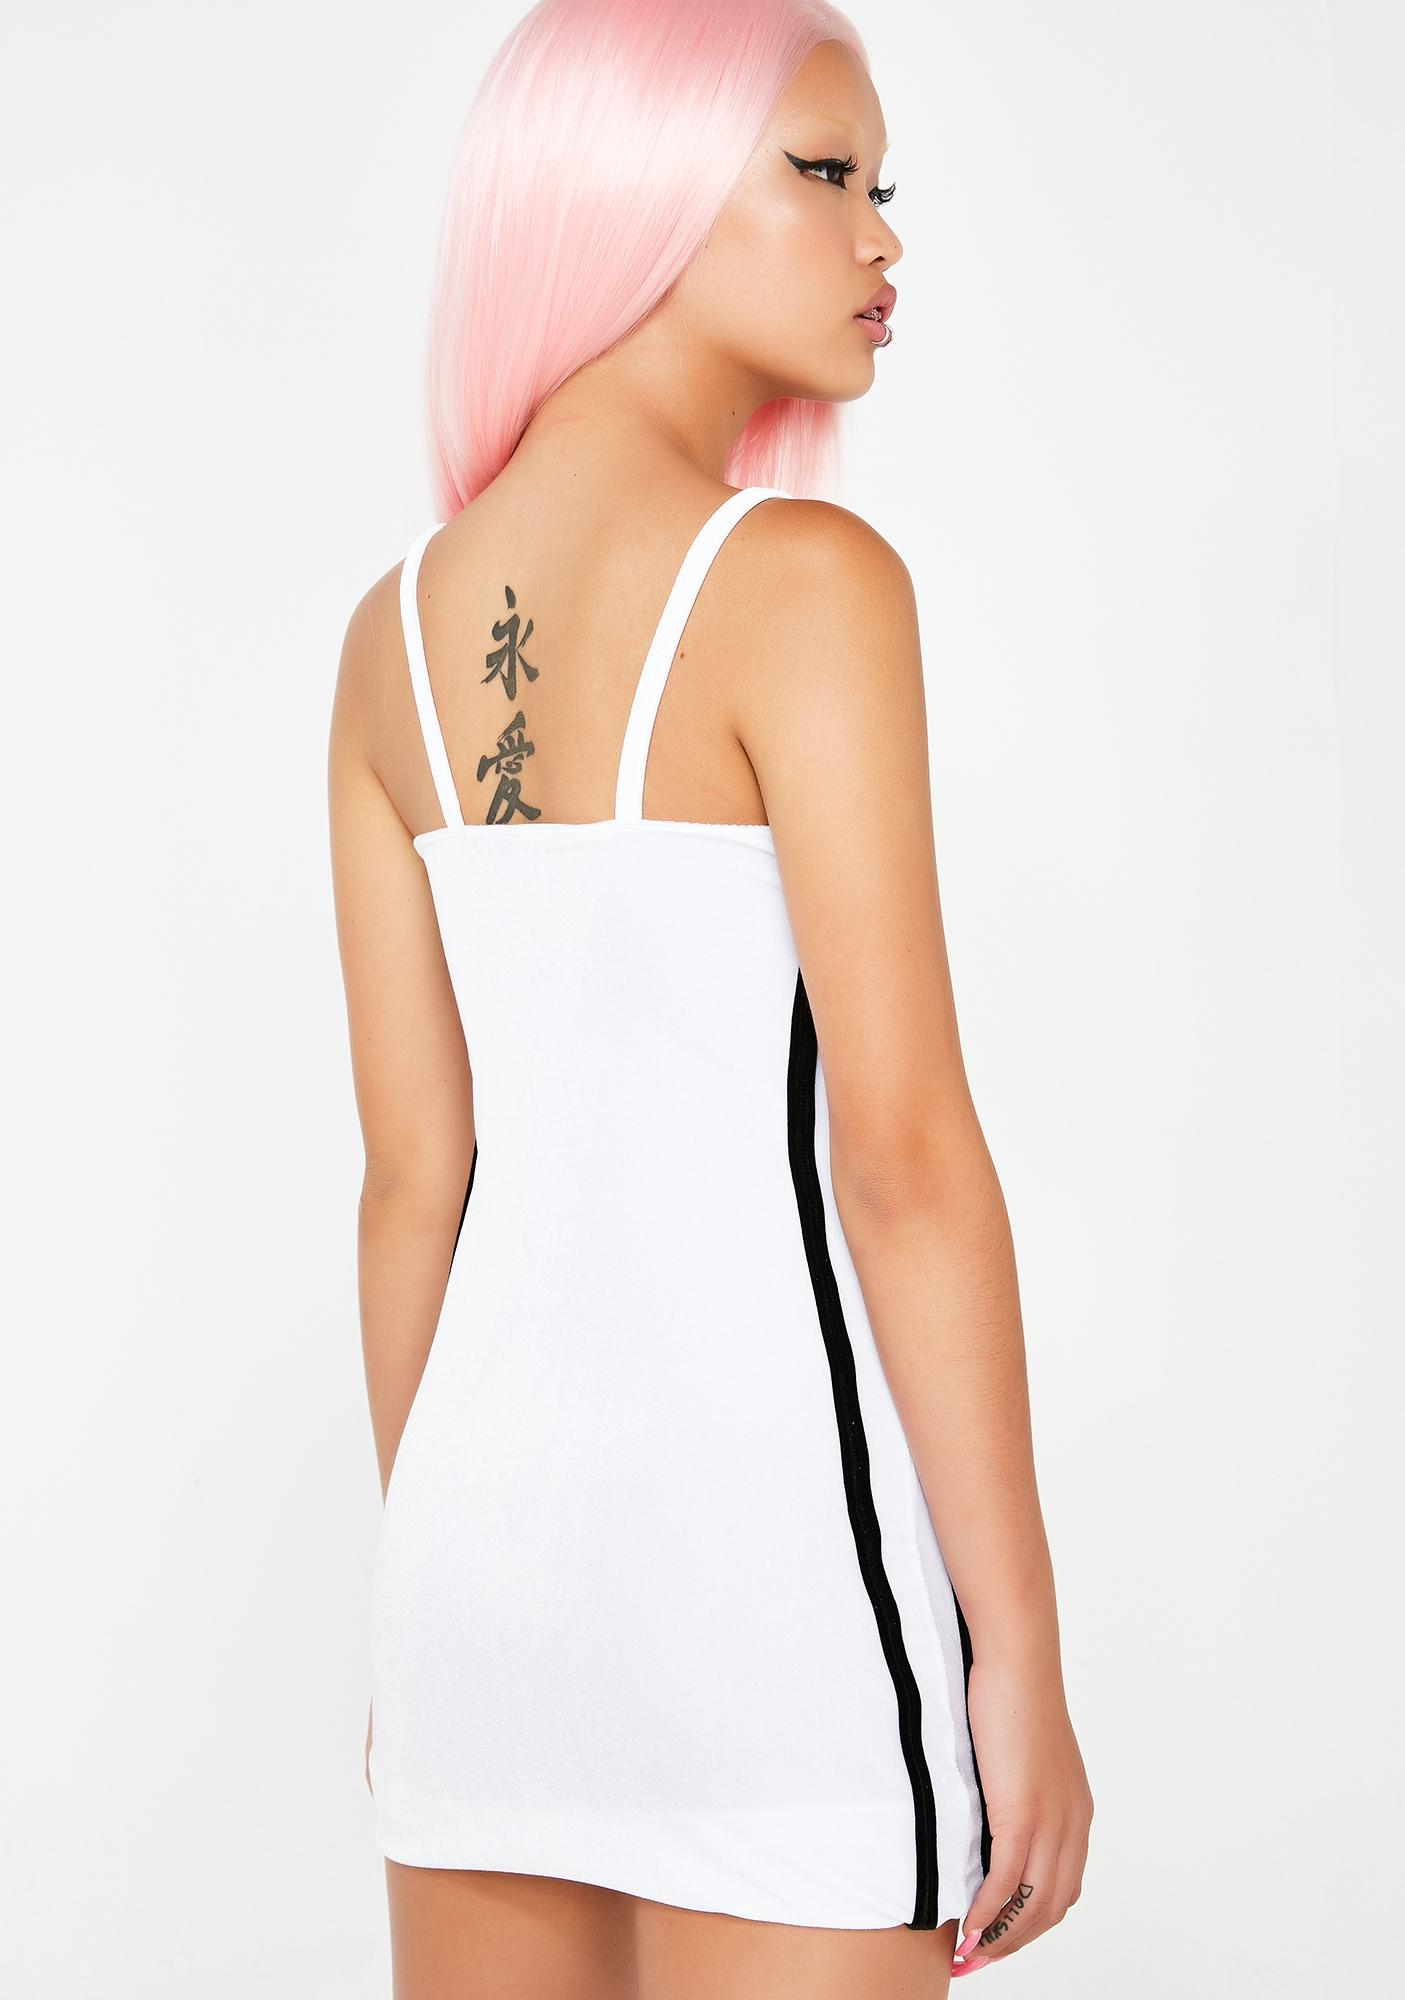 Ivy Berlin White Tennis Dress